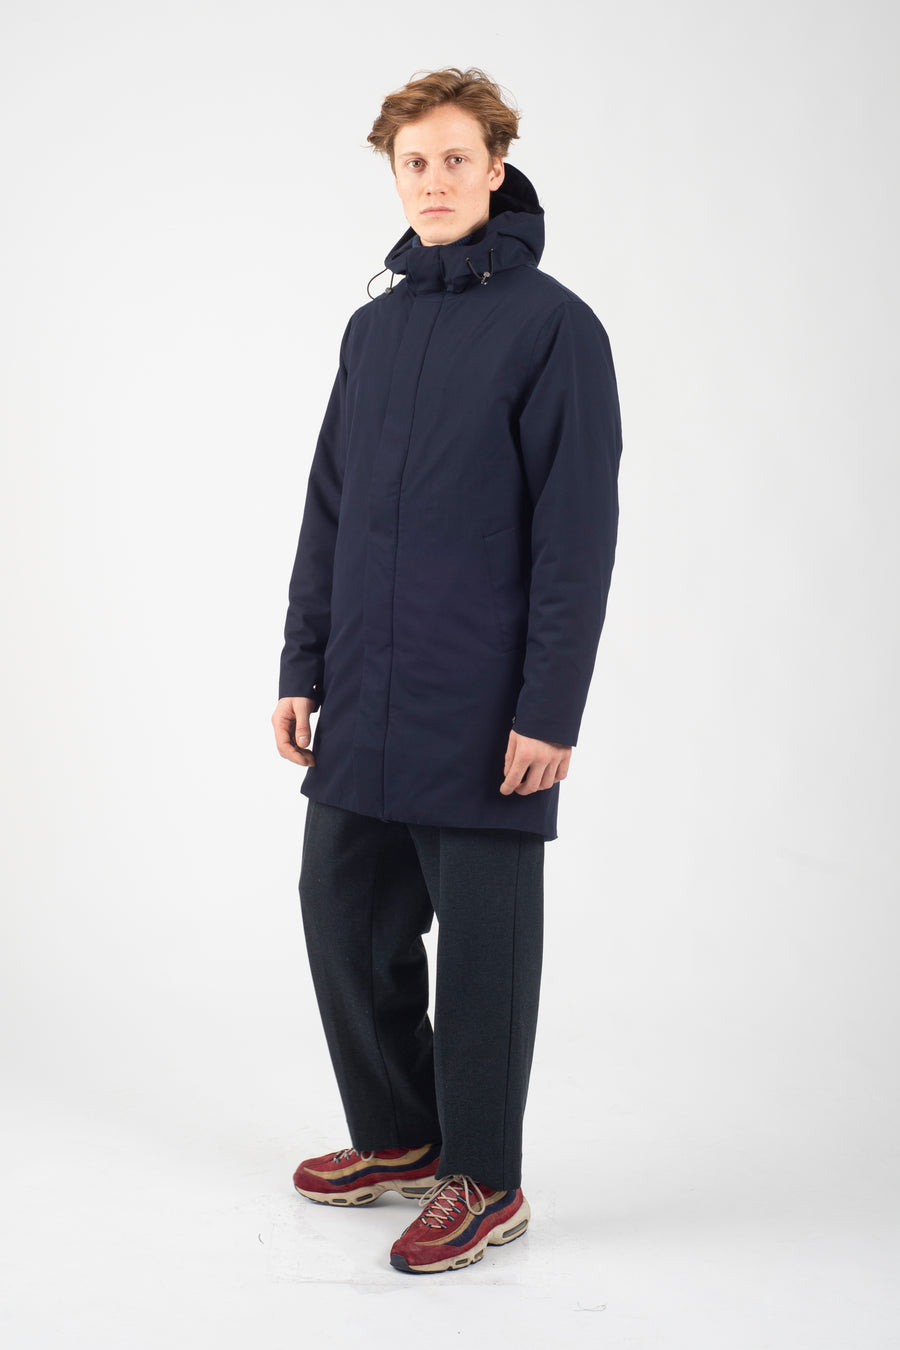 Terror Weather Parka Berlingo Navy Orange Lining